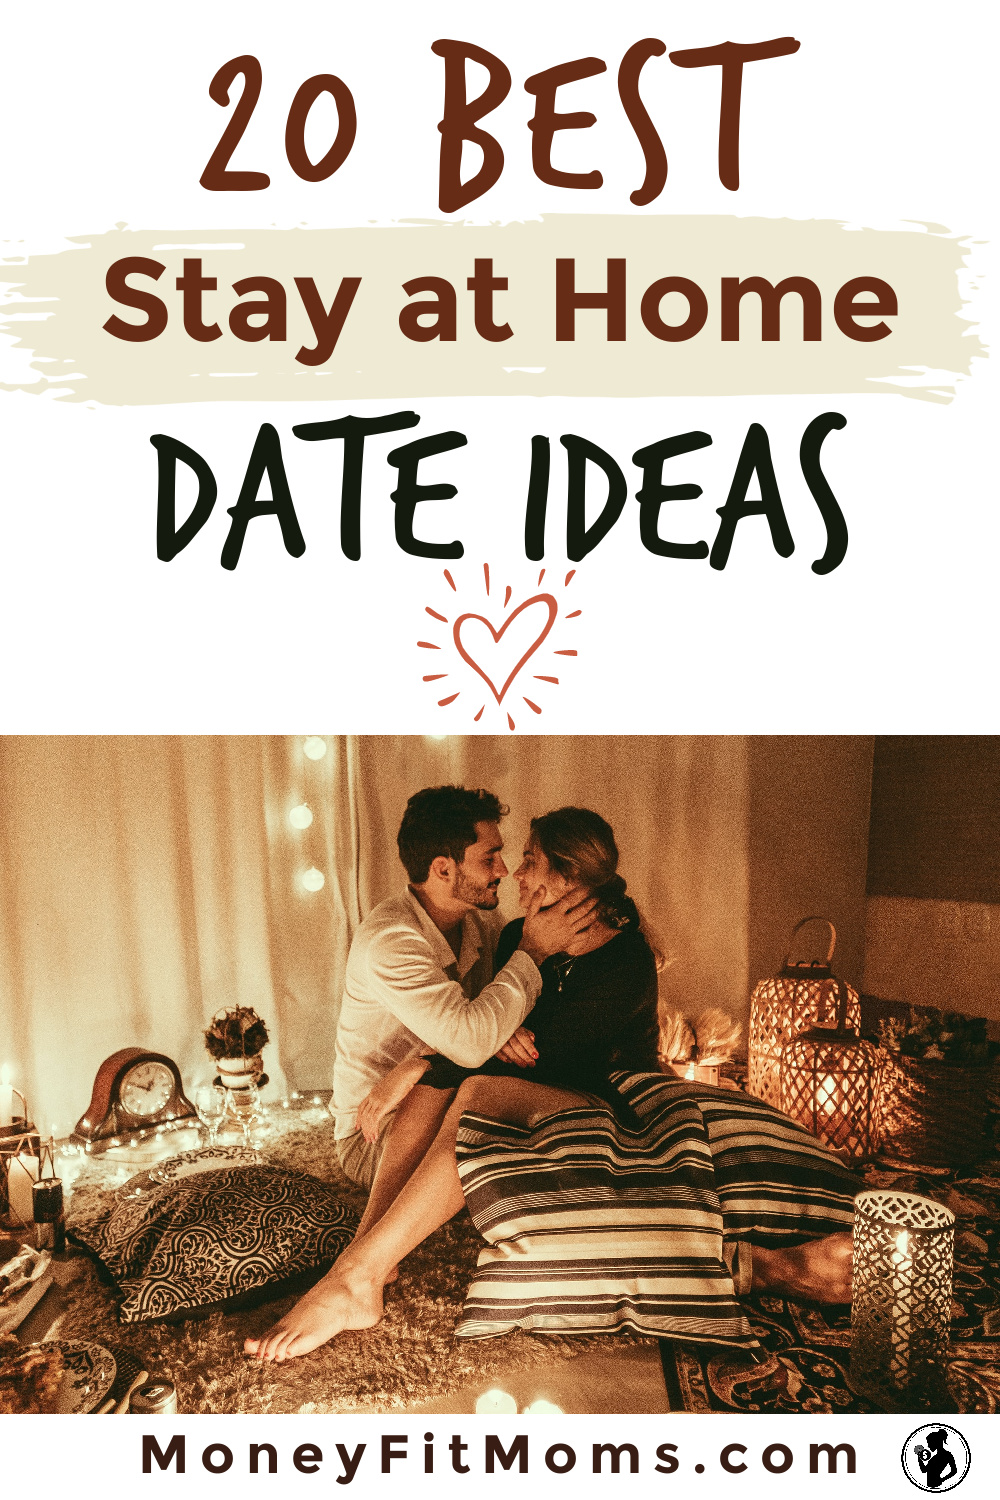 The 20 BEST Stay at Home Date Ideas - MoneyFitMoms.com